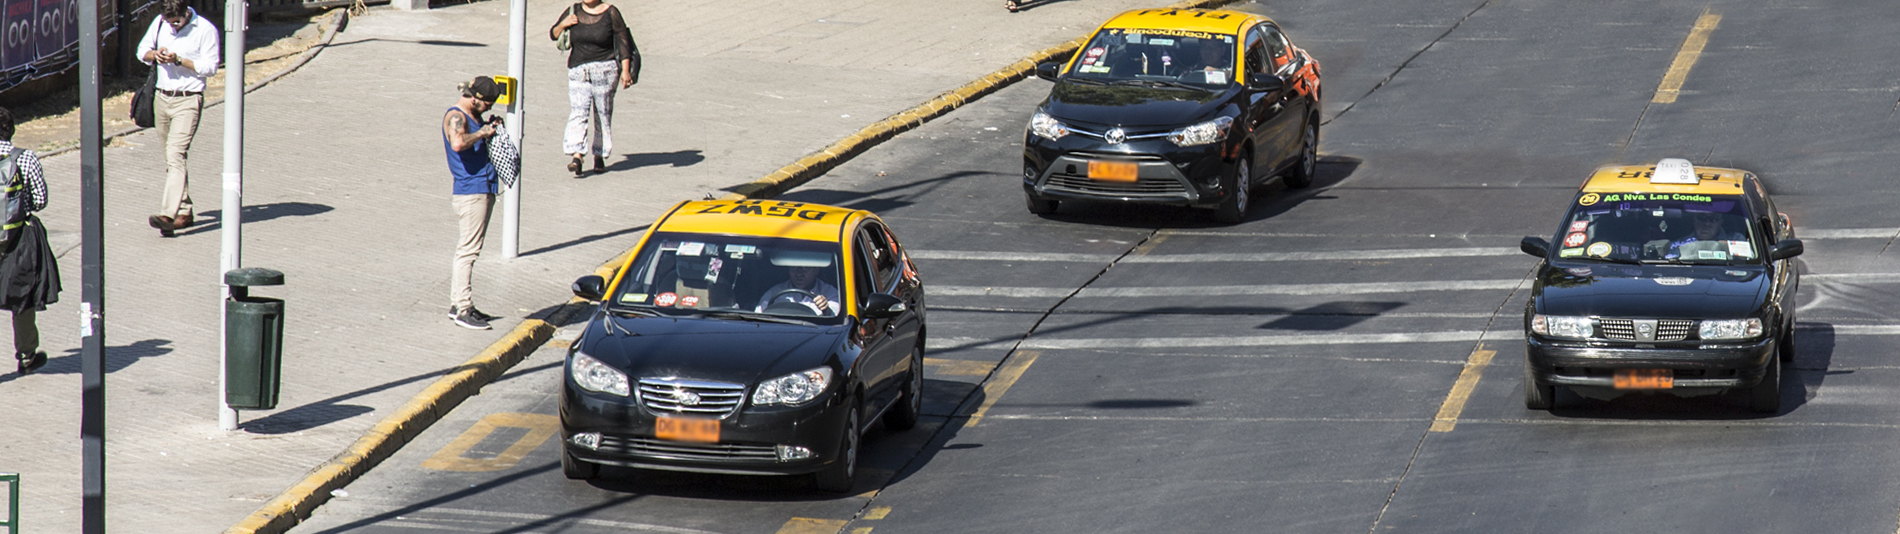 Taxis in Santiago